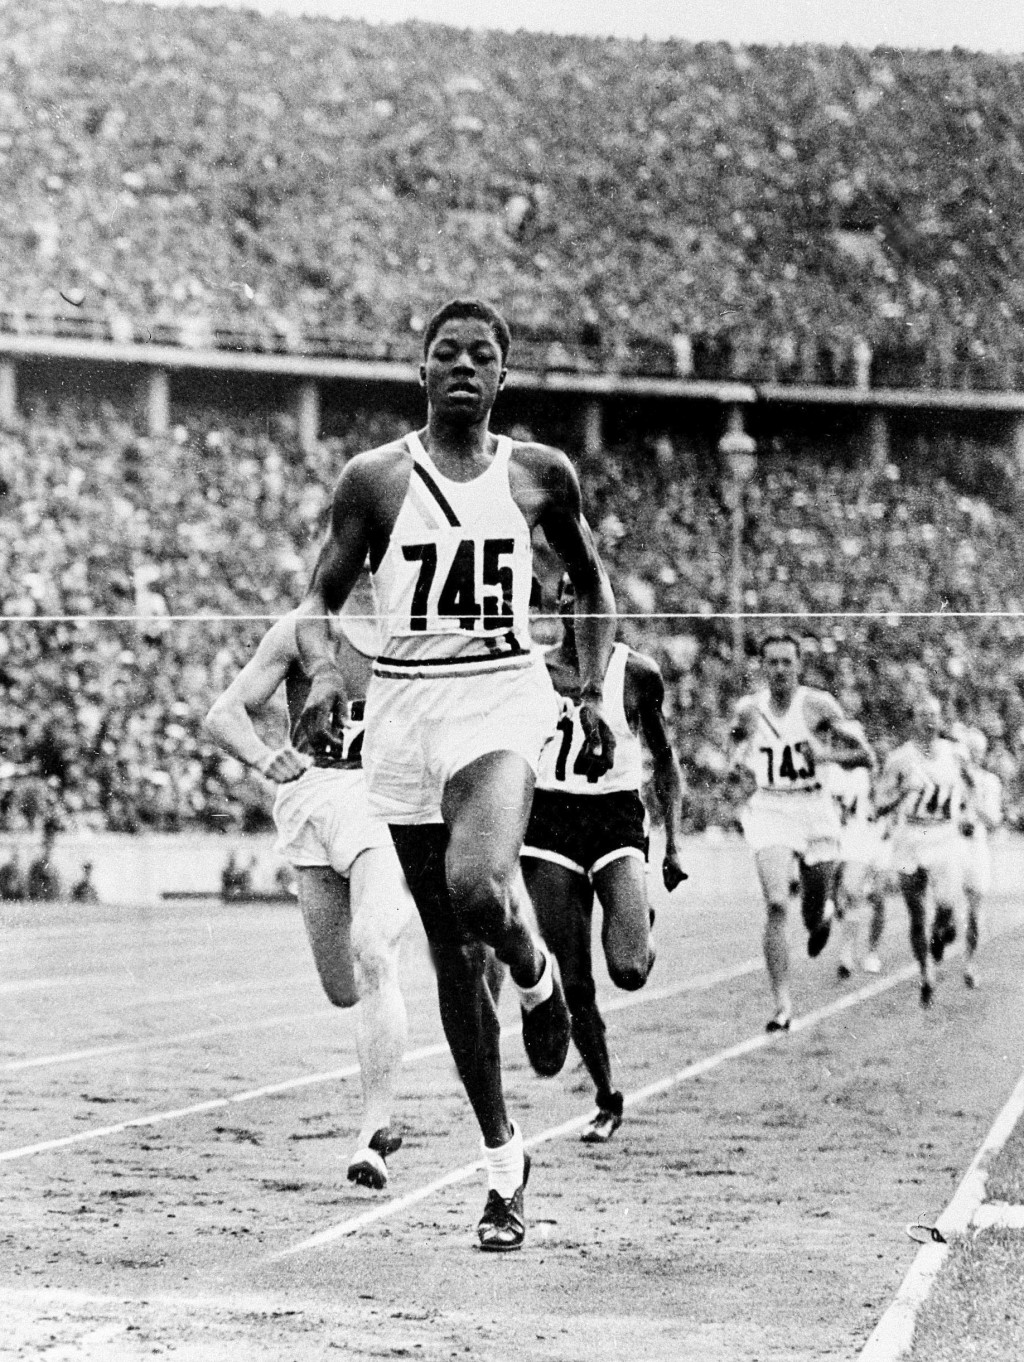 FILE - In this Aug. 8, 1936 file photo, John Woodruff, a freshman at the University of Pittsburgh, wins the 800-meter race at the Olympic Games in Ber...